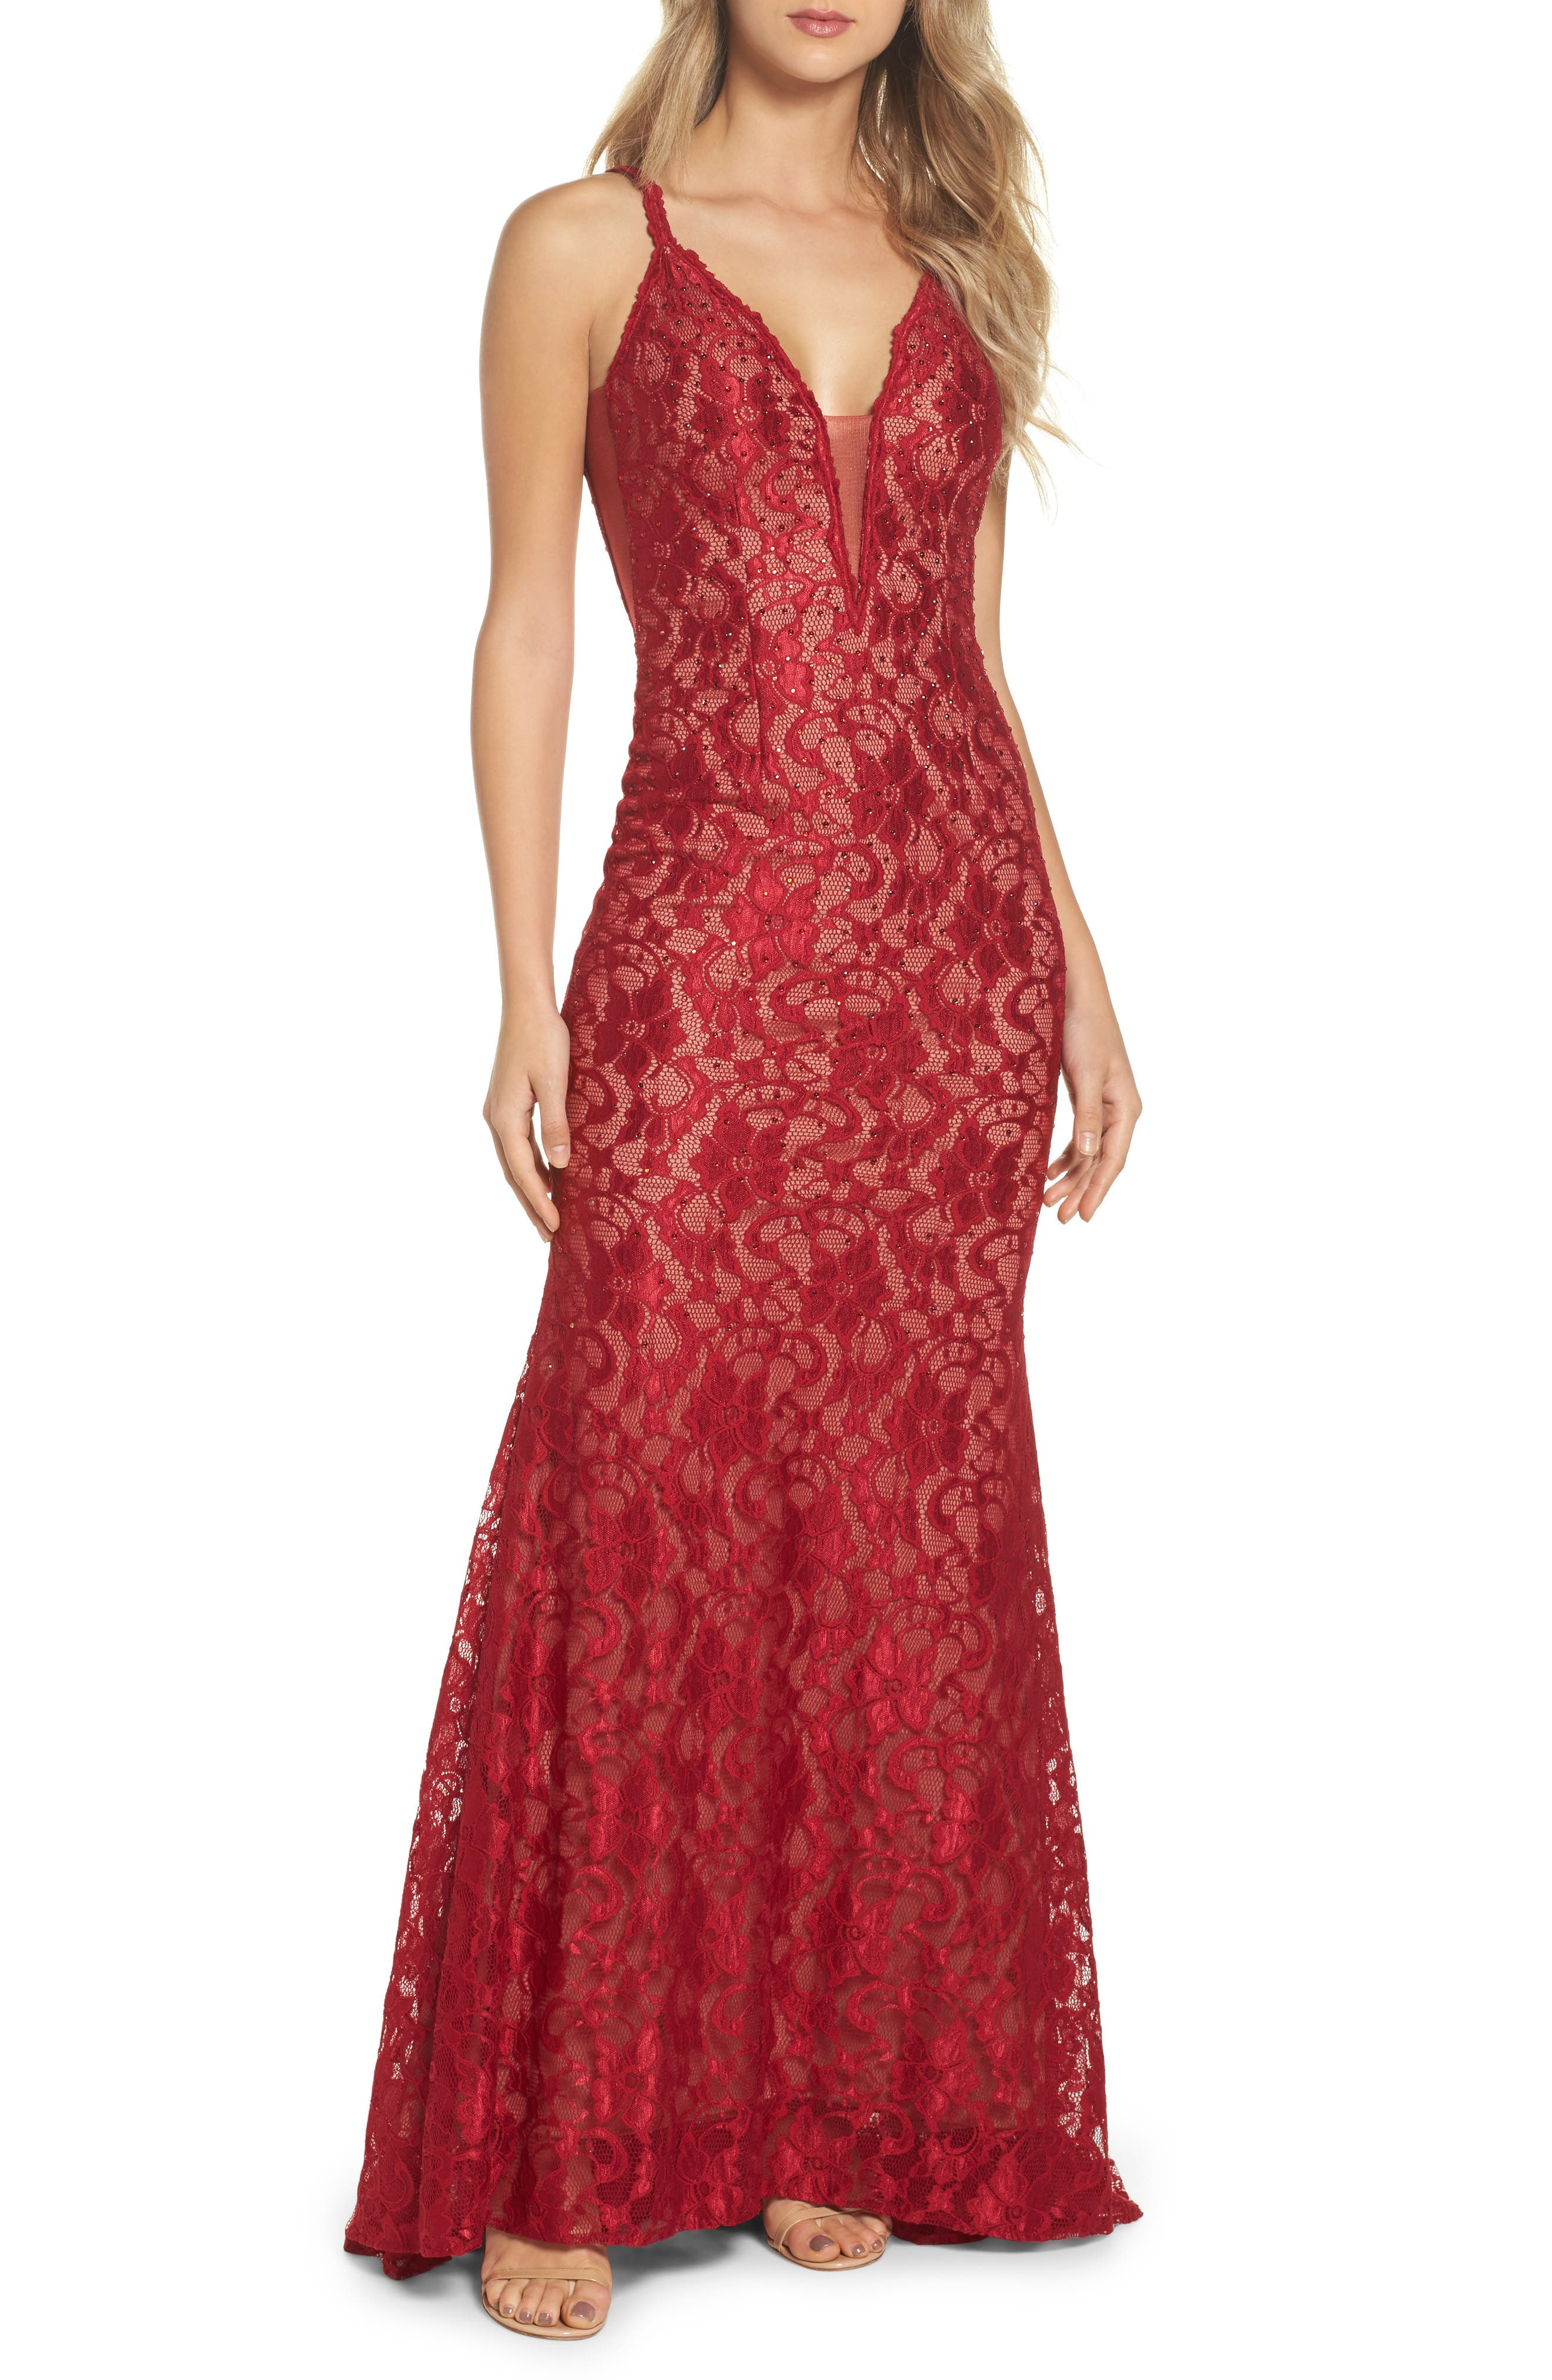 Plunging Beaded Lace Mermaid Gown,                             Main thumbnail 1, color,                             Red/ Tan